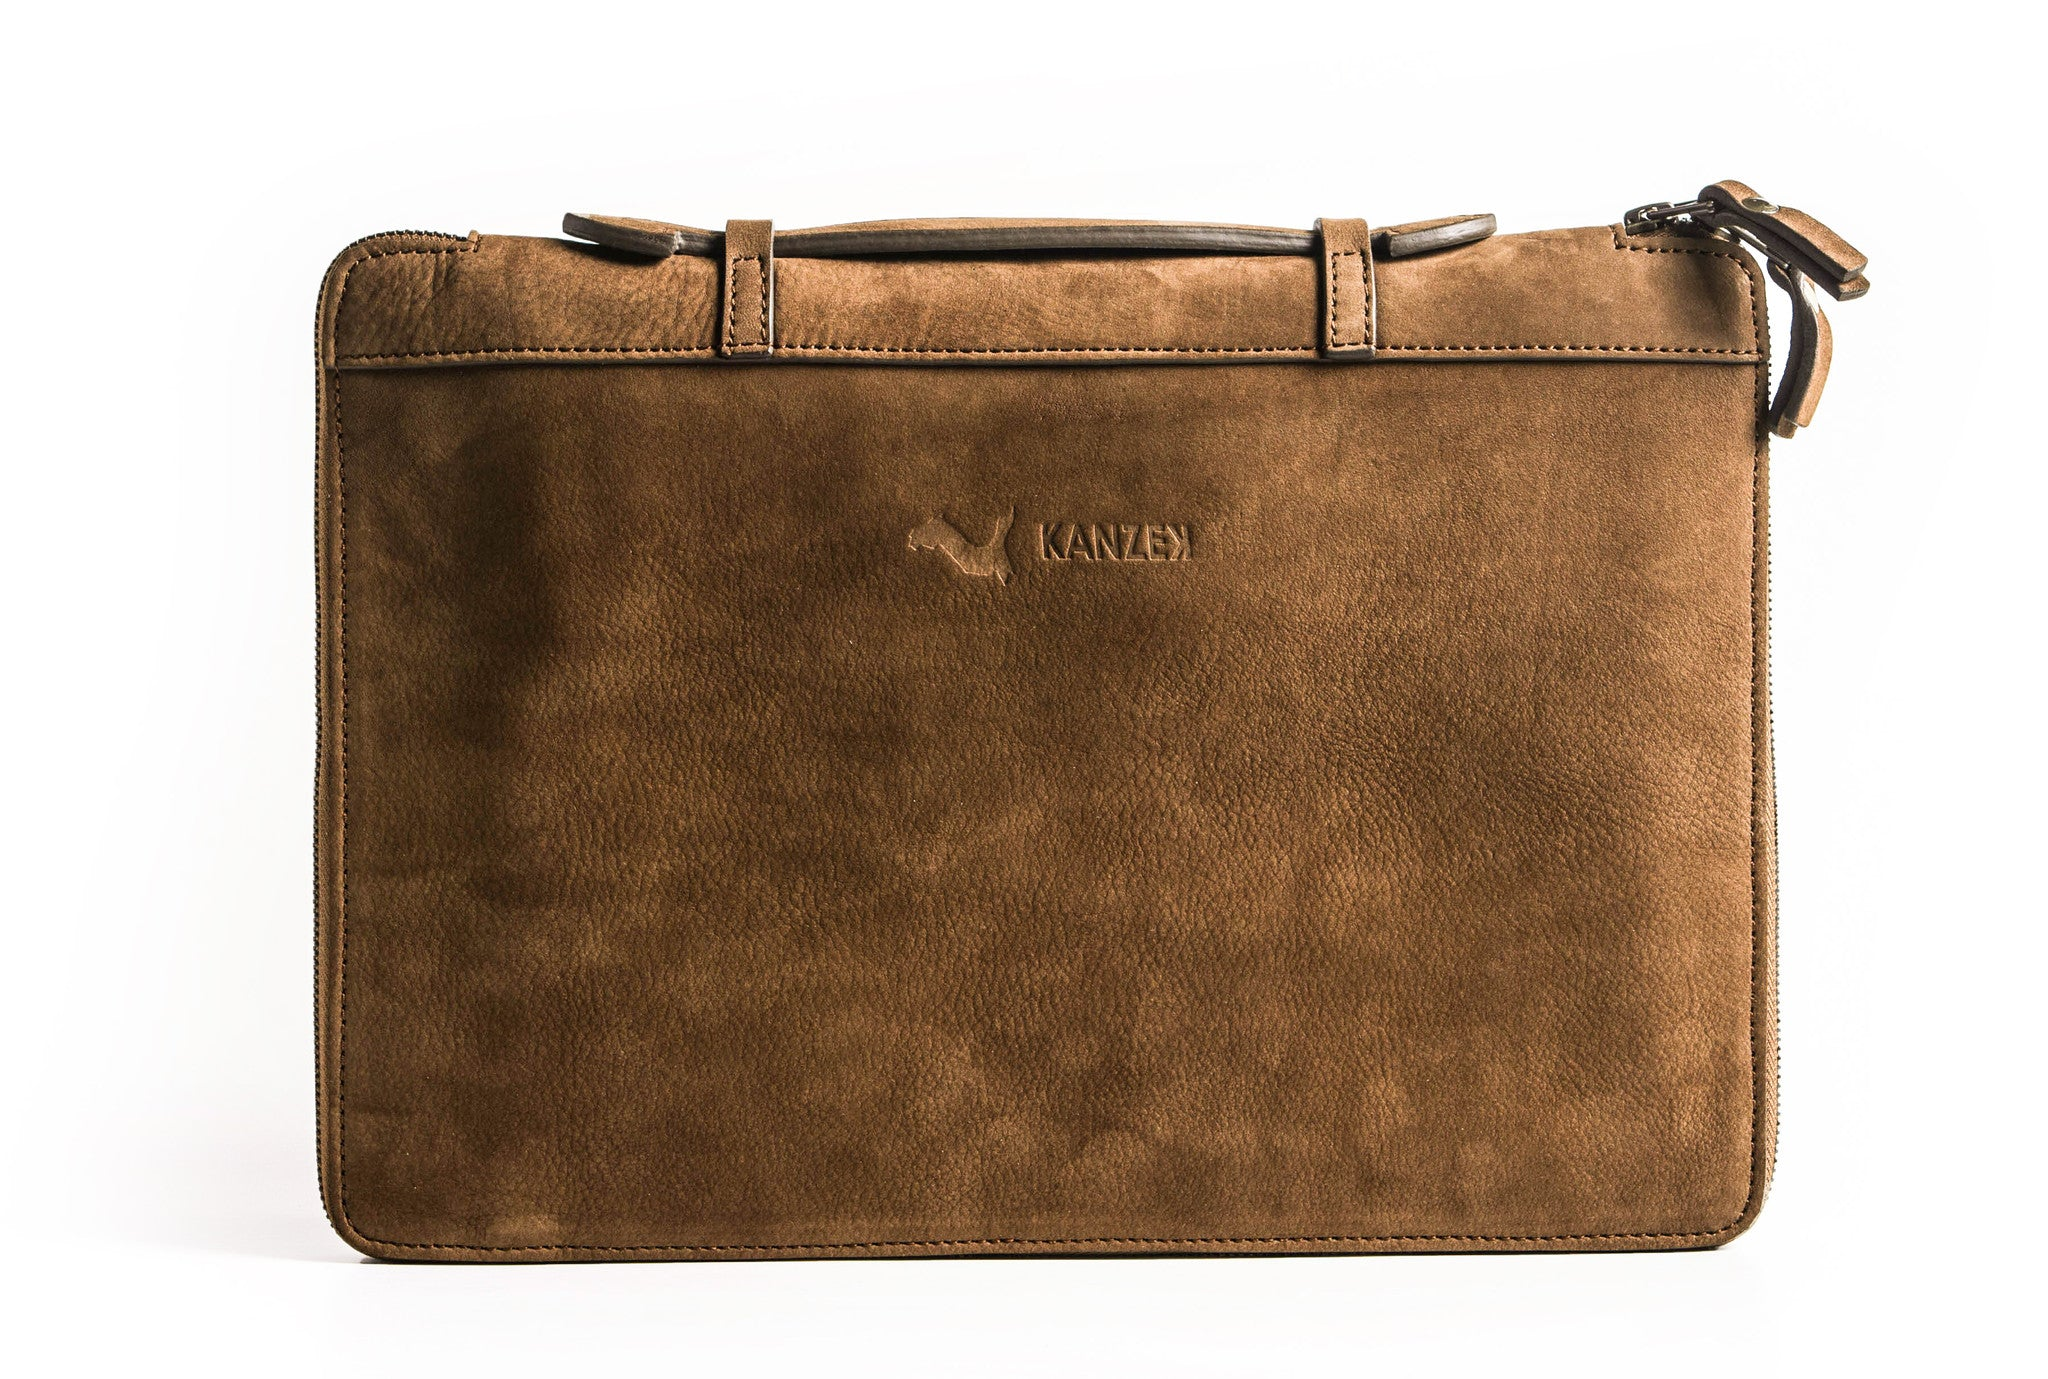 A front view of KANZEK's unisex leather portfolio in vintage brown with full grain calf leather